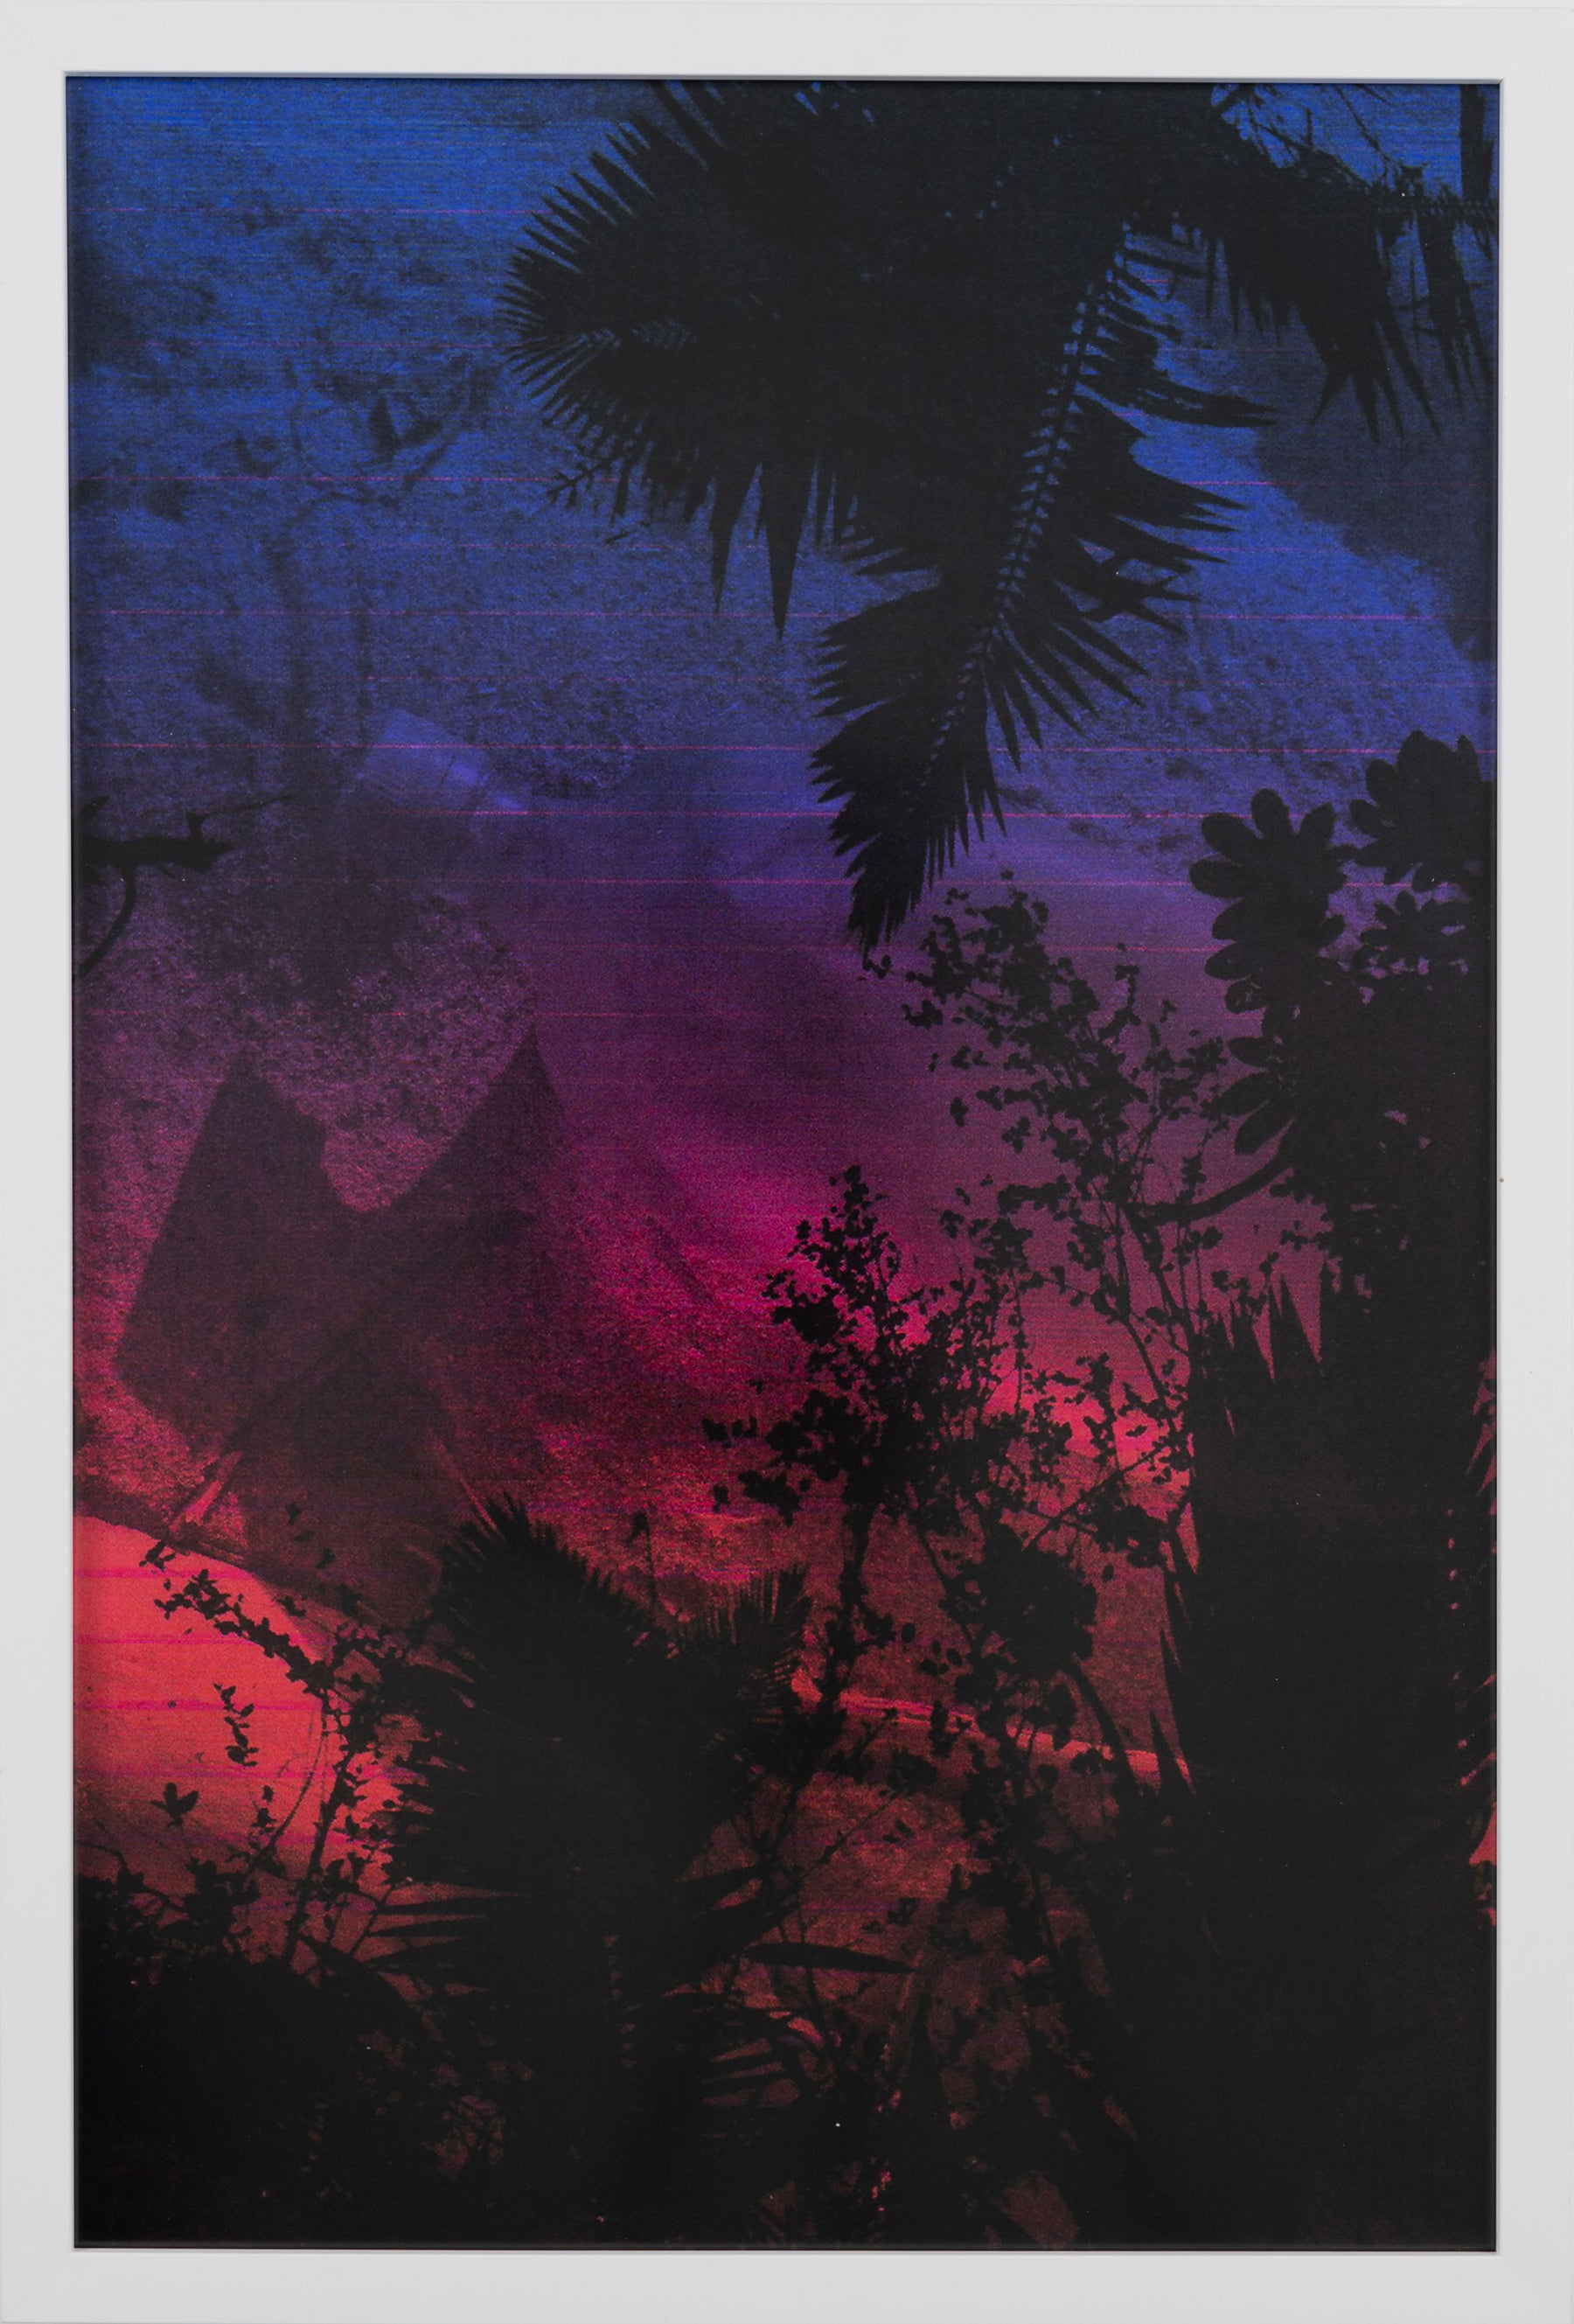 Dusk/Daybreak 4 Framed Color Photography Print  30 x 20 in. Cerulean Fuschia